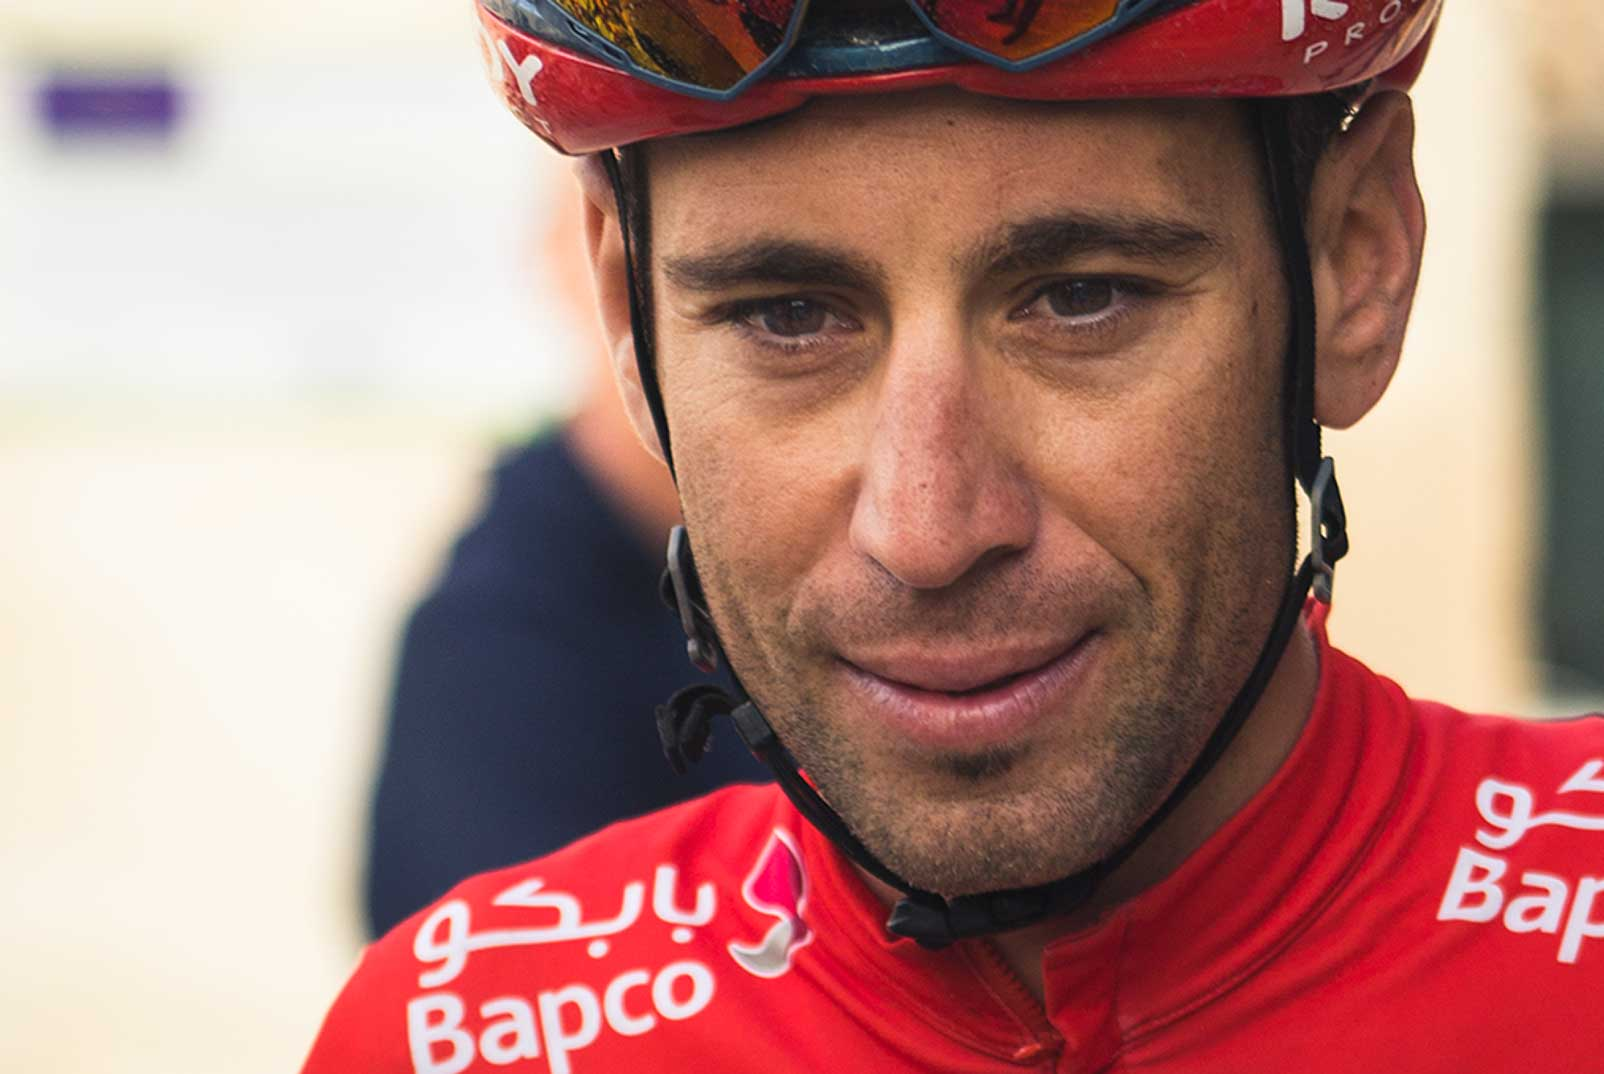 Nibali-after-the-ride-in-sicily-wideformat2